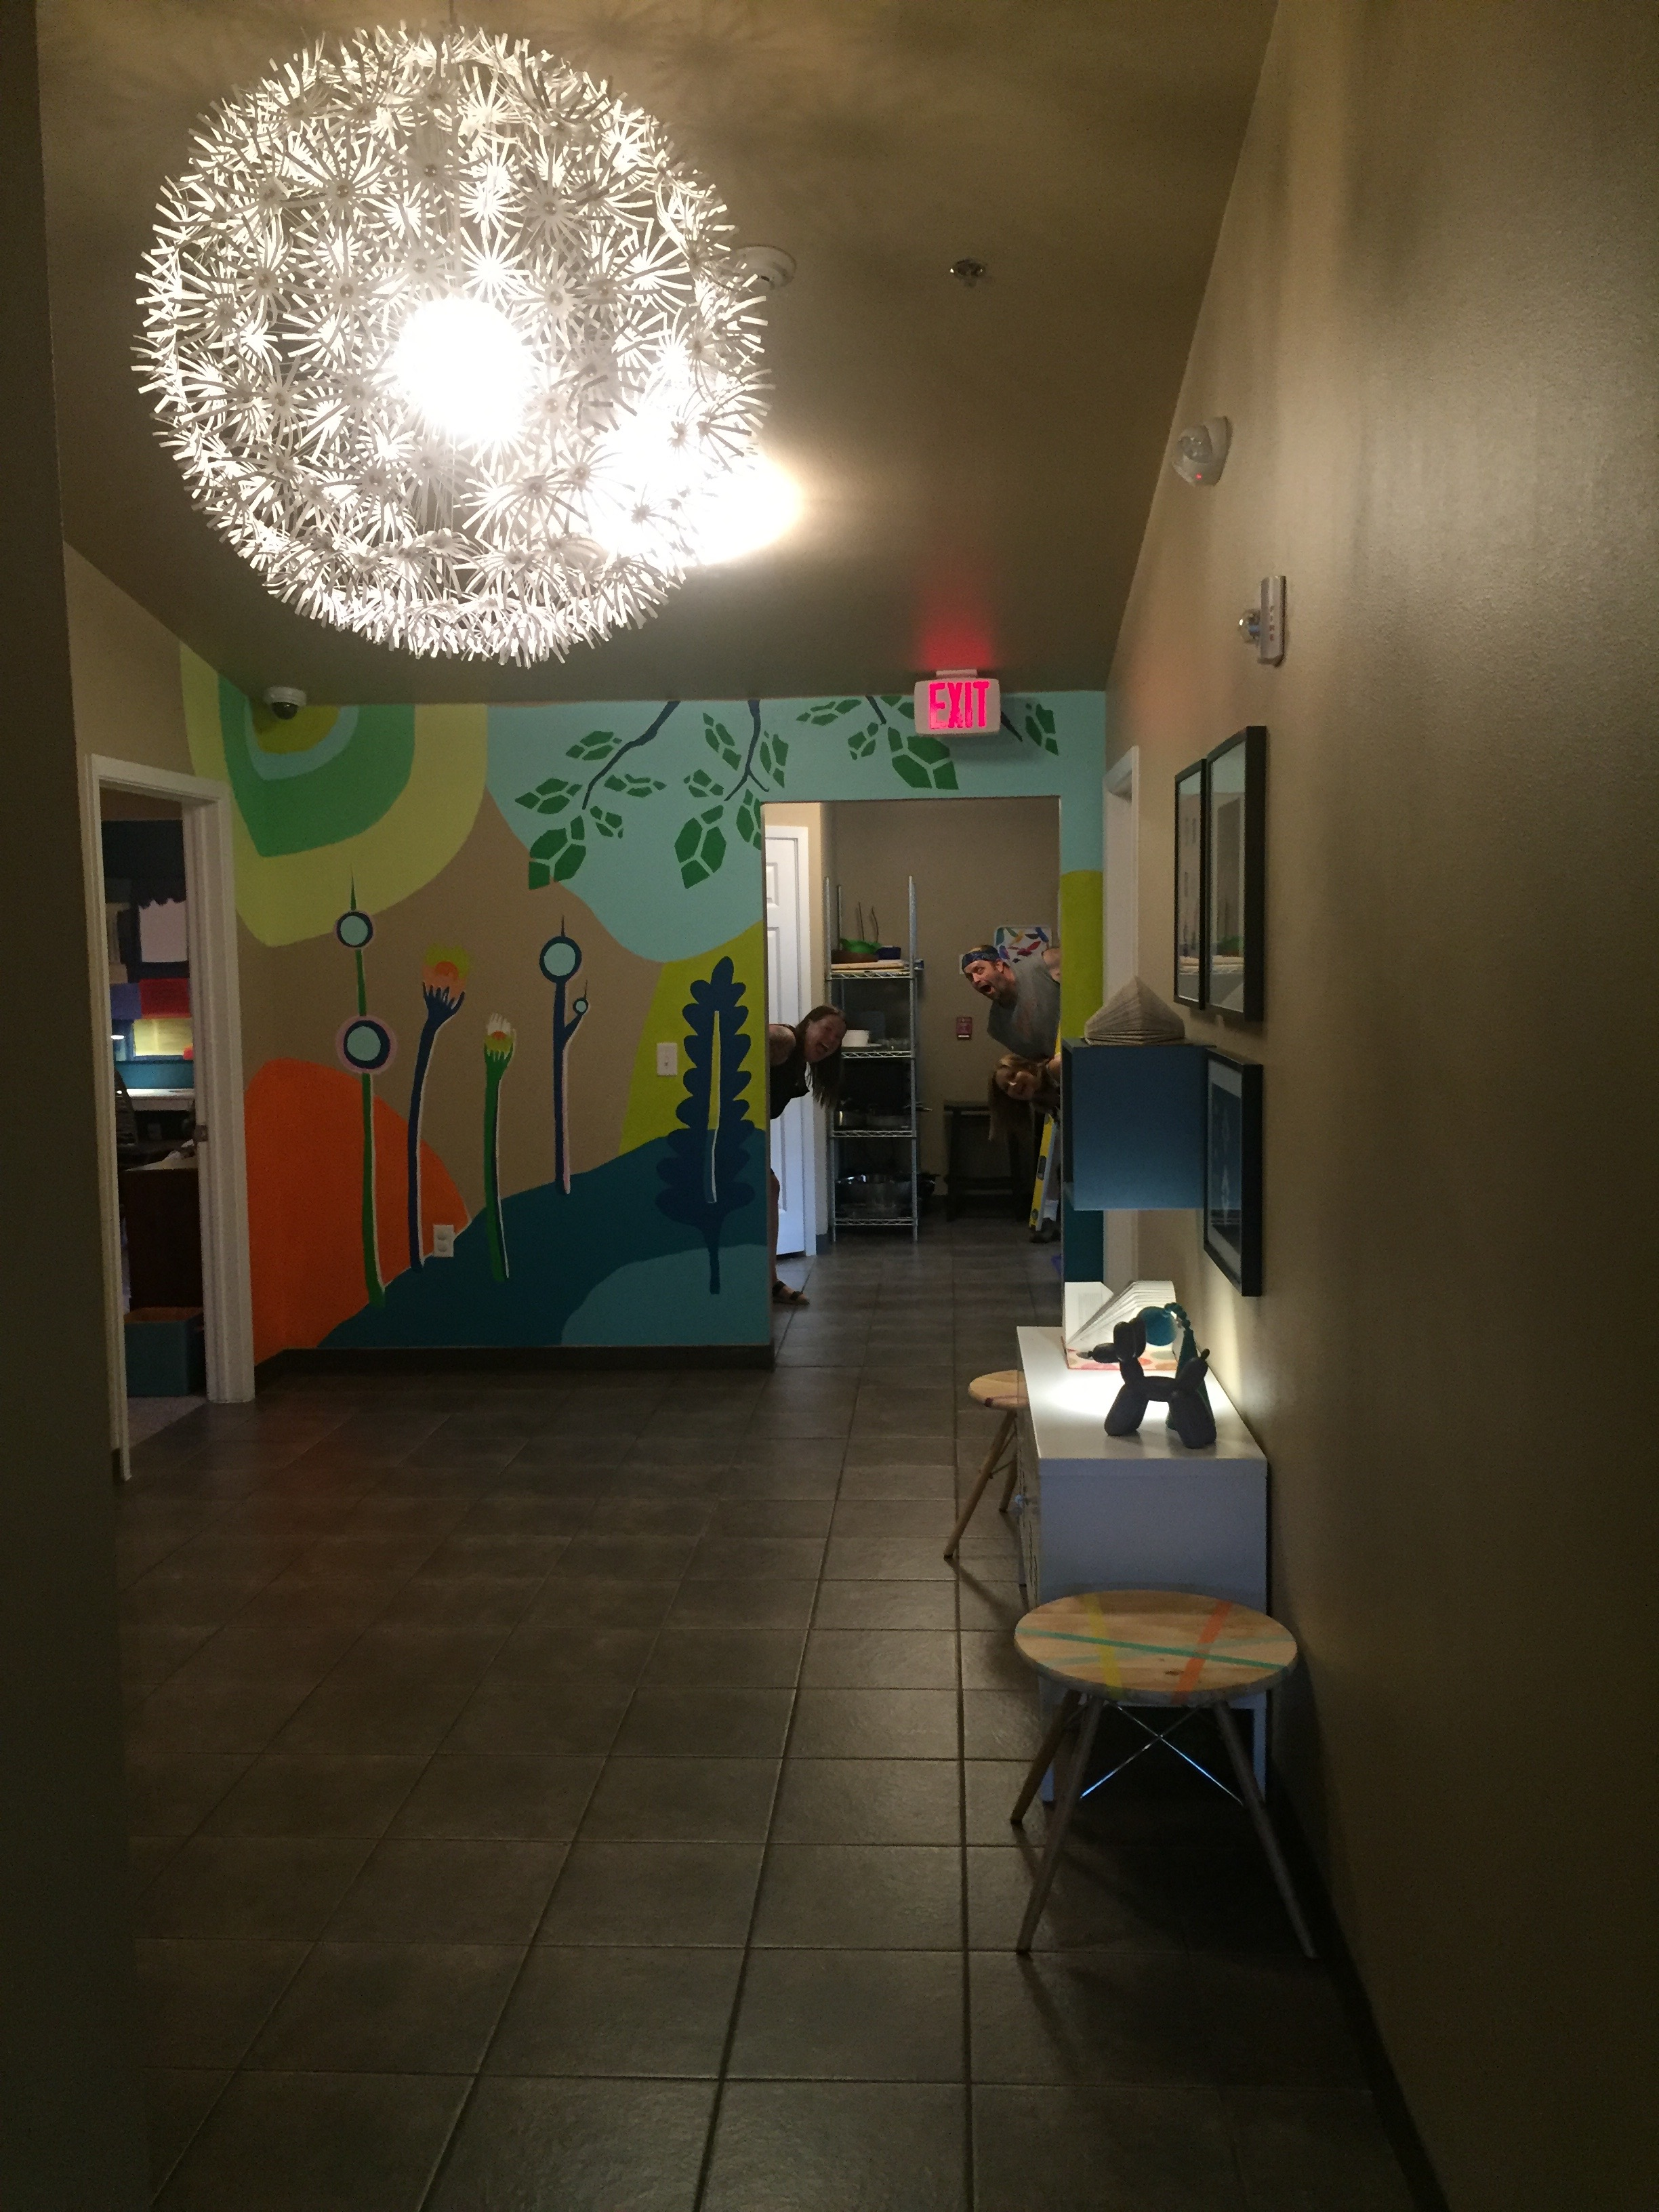 From the Foyer to the Kitchen, the mural immediately catches your eye